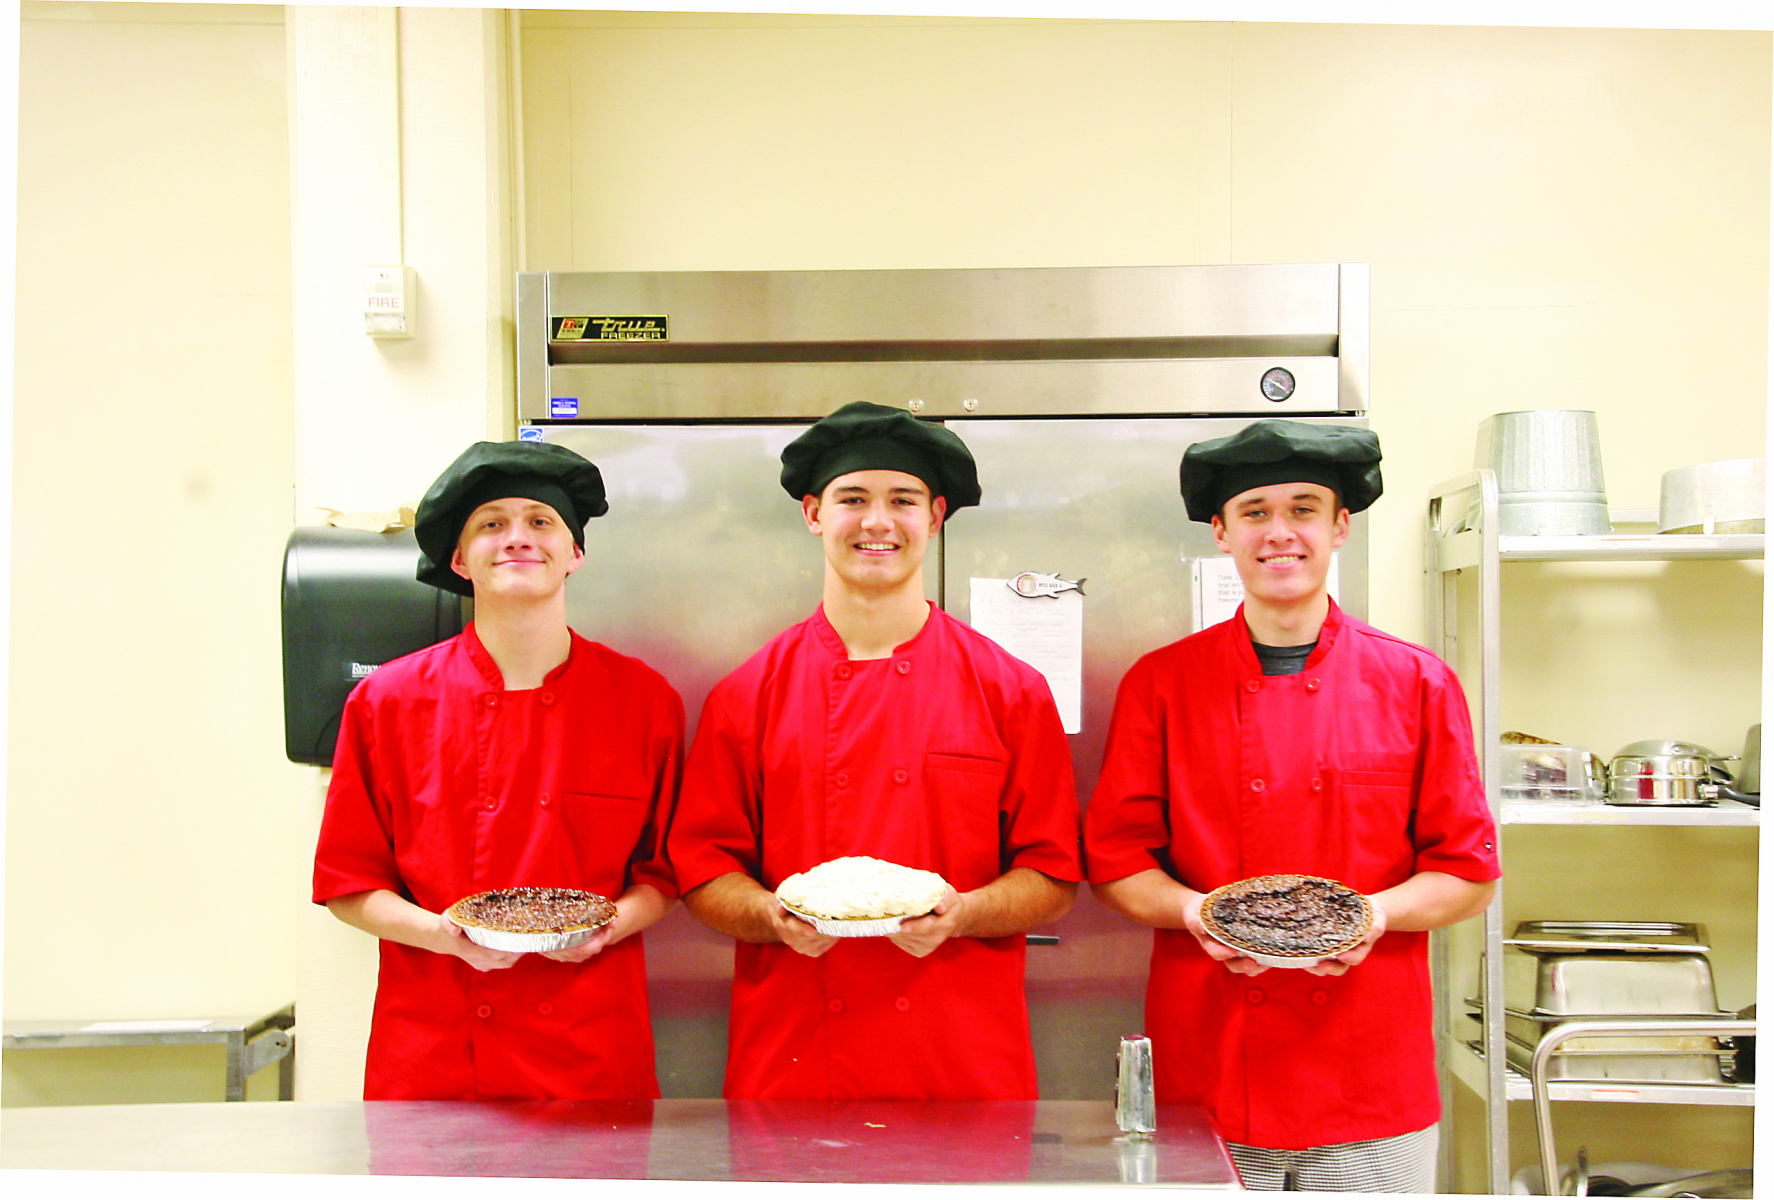 culinary-arts-team-pies